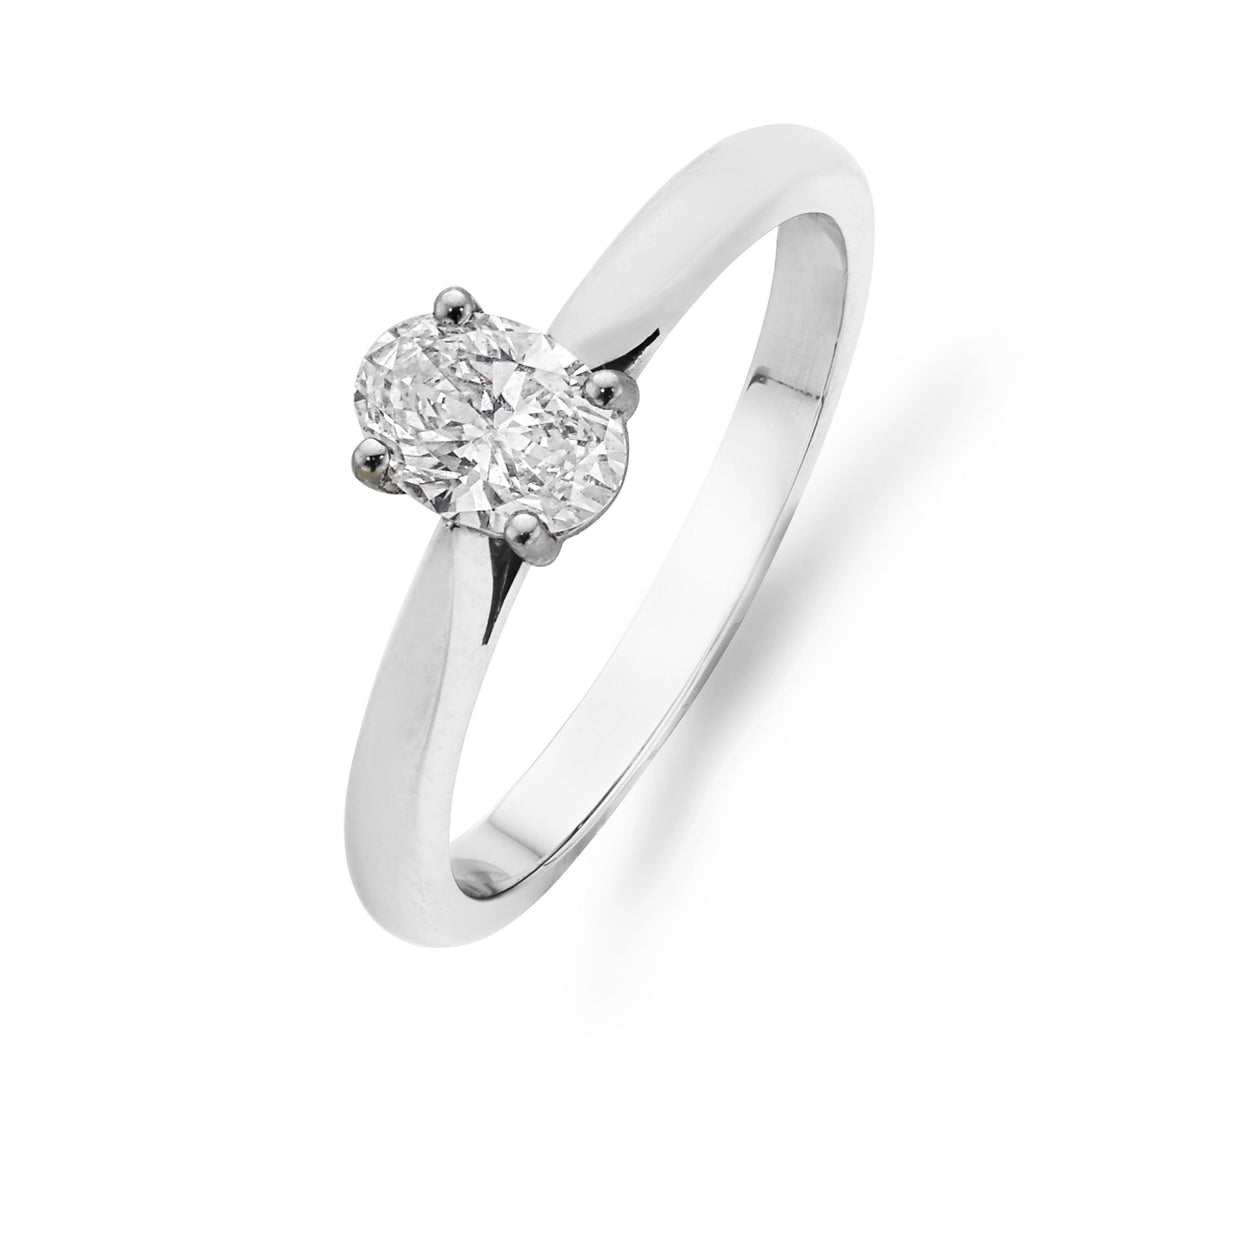 Oval-Shaped Diamond Engagement Ring-Hamilton & Inches